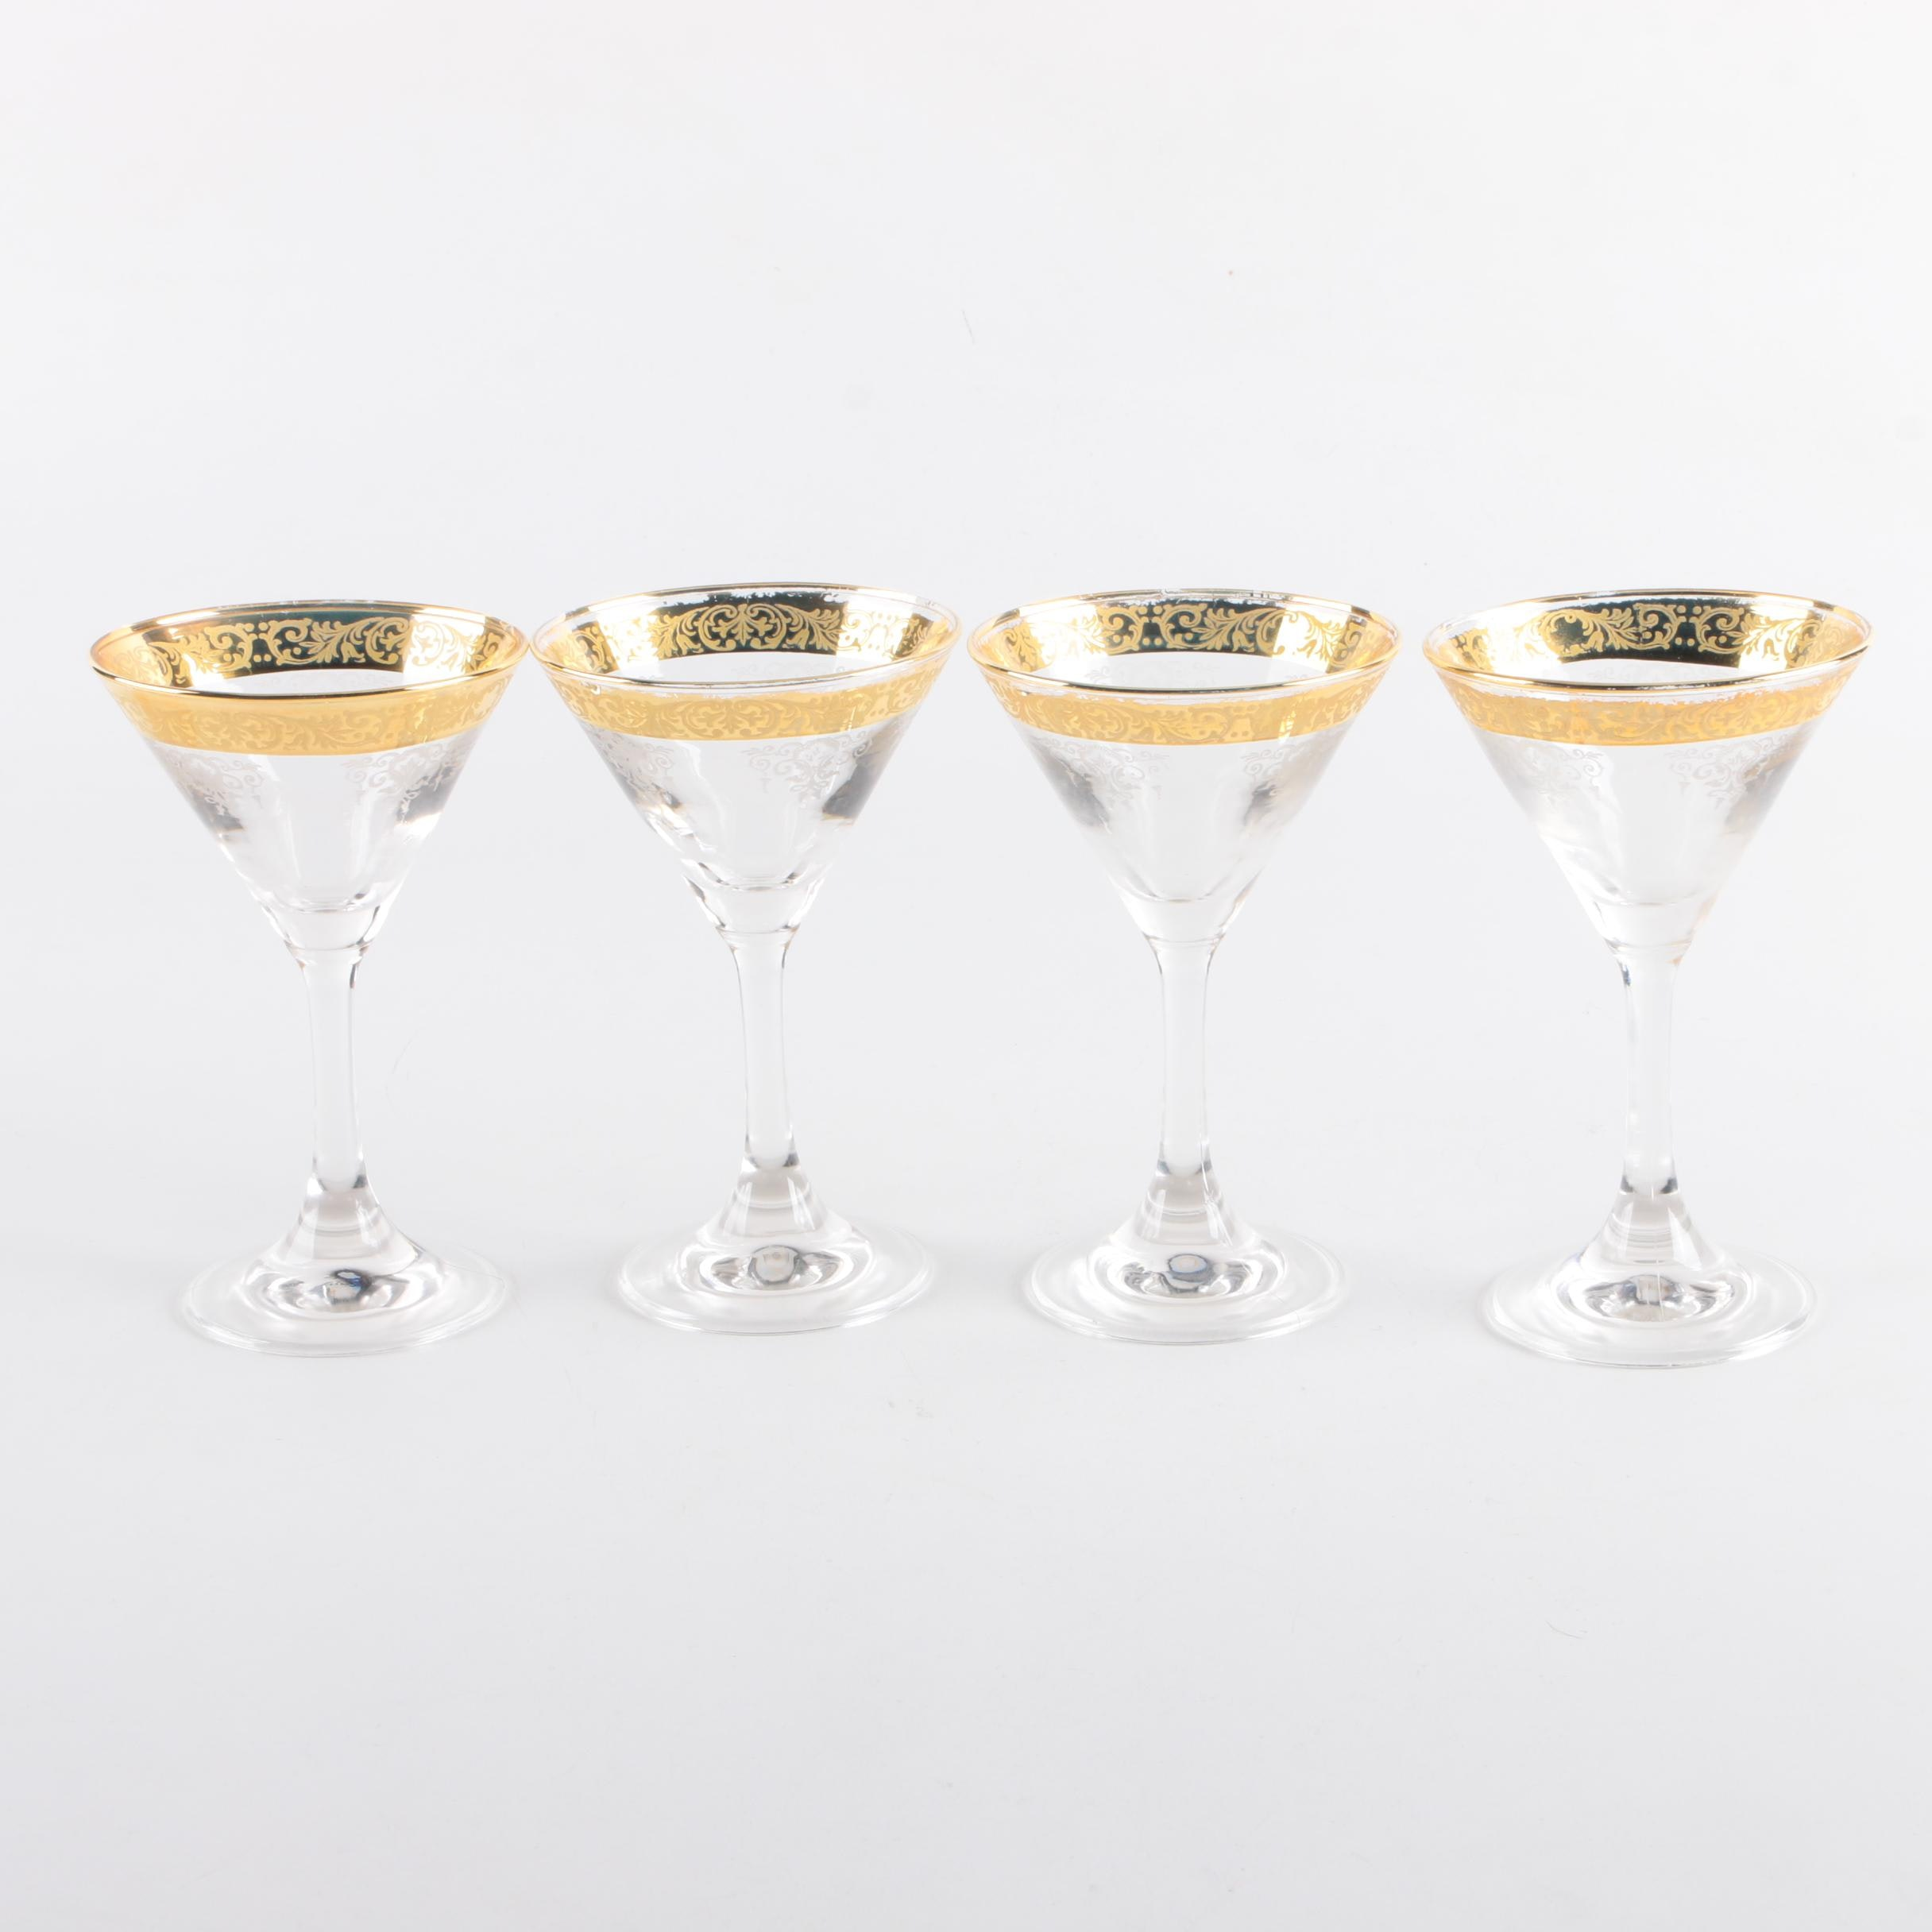 Cocktail Glasses with Encrusted Gilded Rims